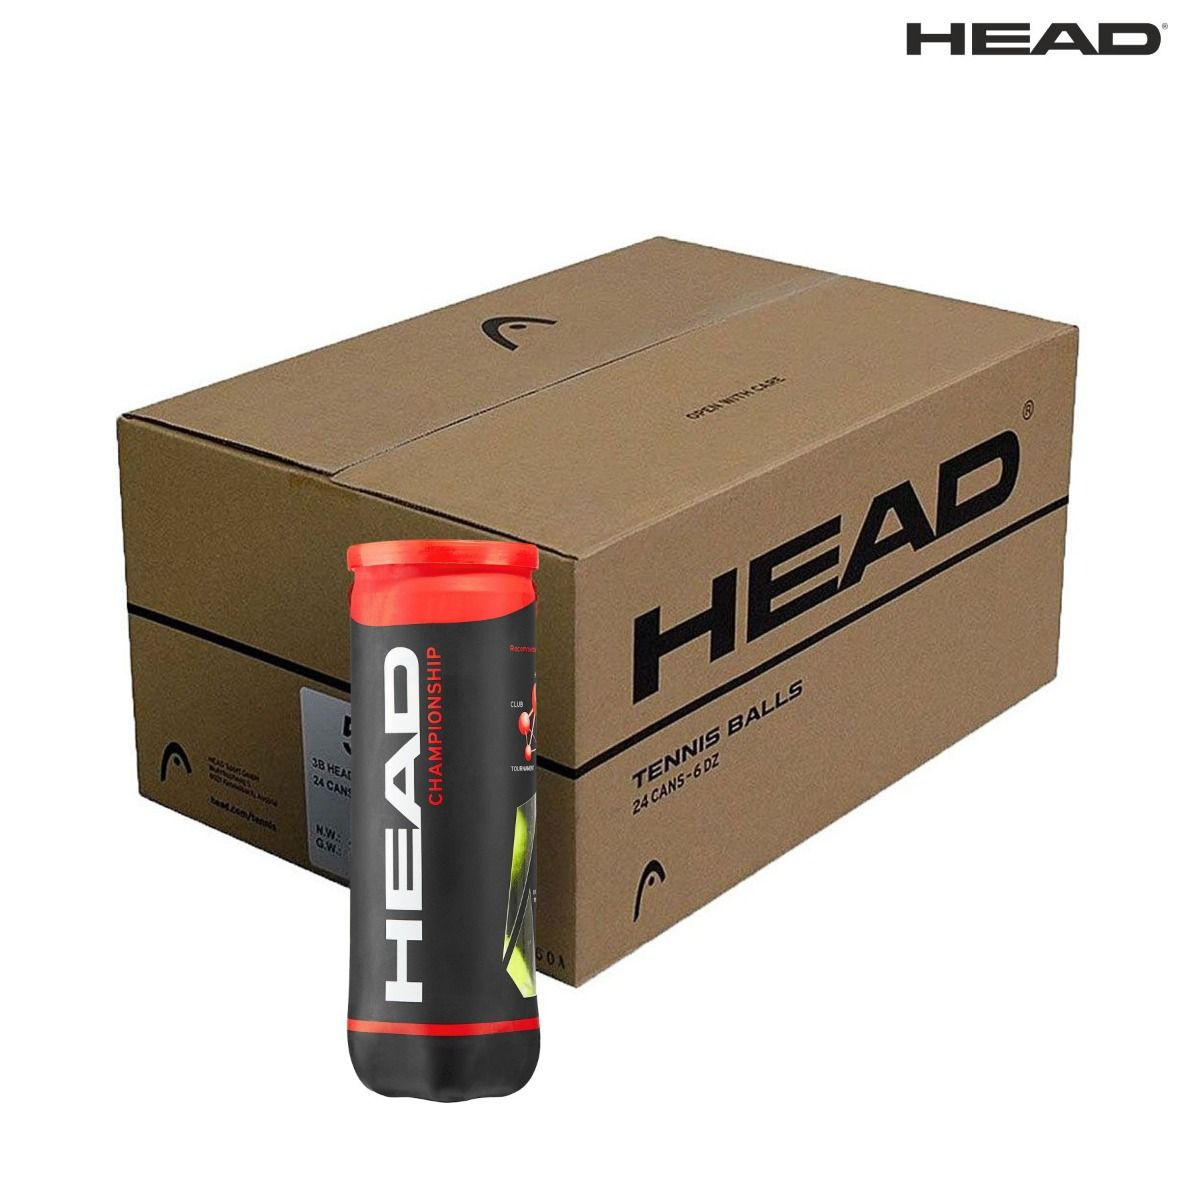 BUY HEAD CHAMPIONSHIP TENNIS BALLS AT BEST PRICE IN INDIA